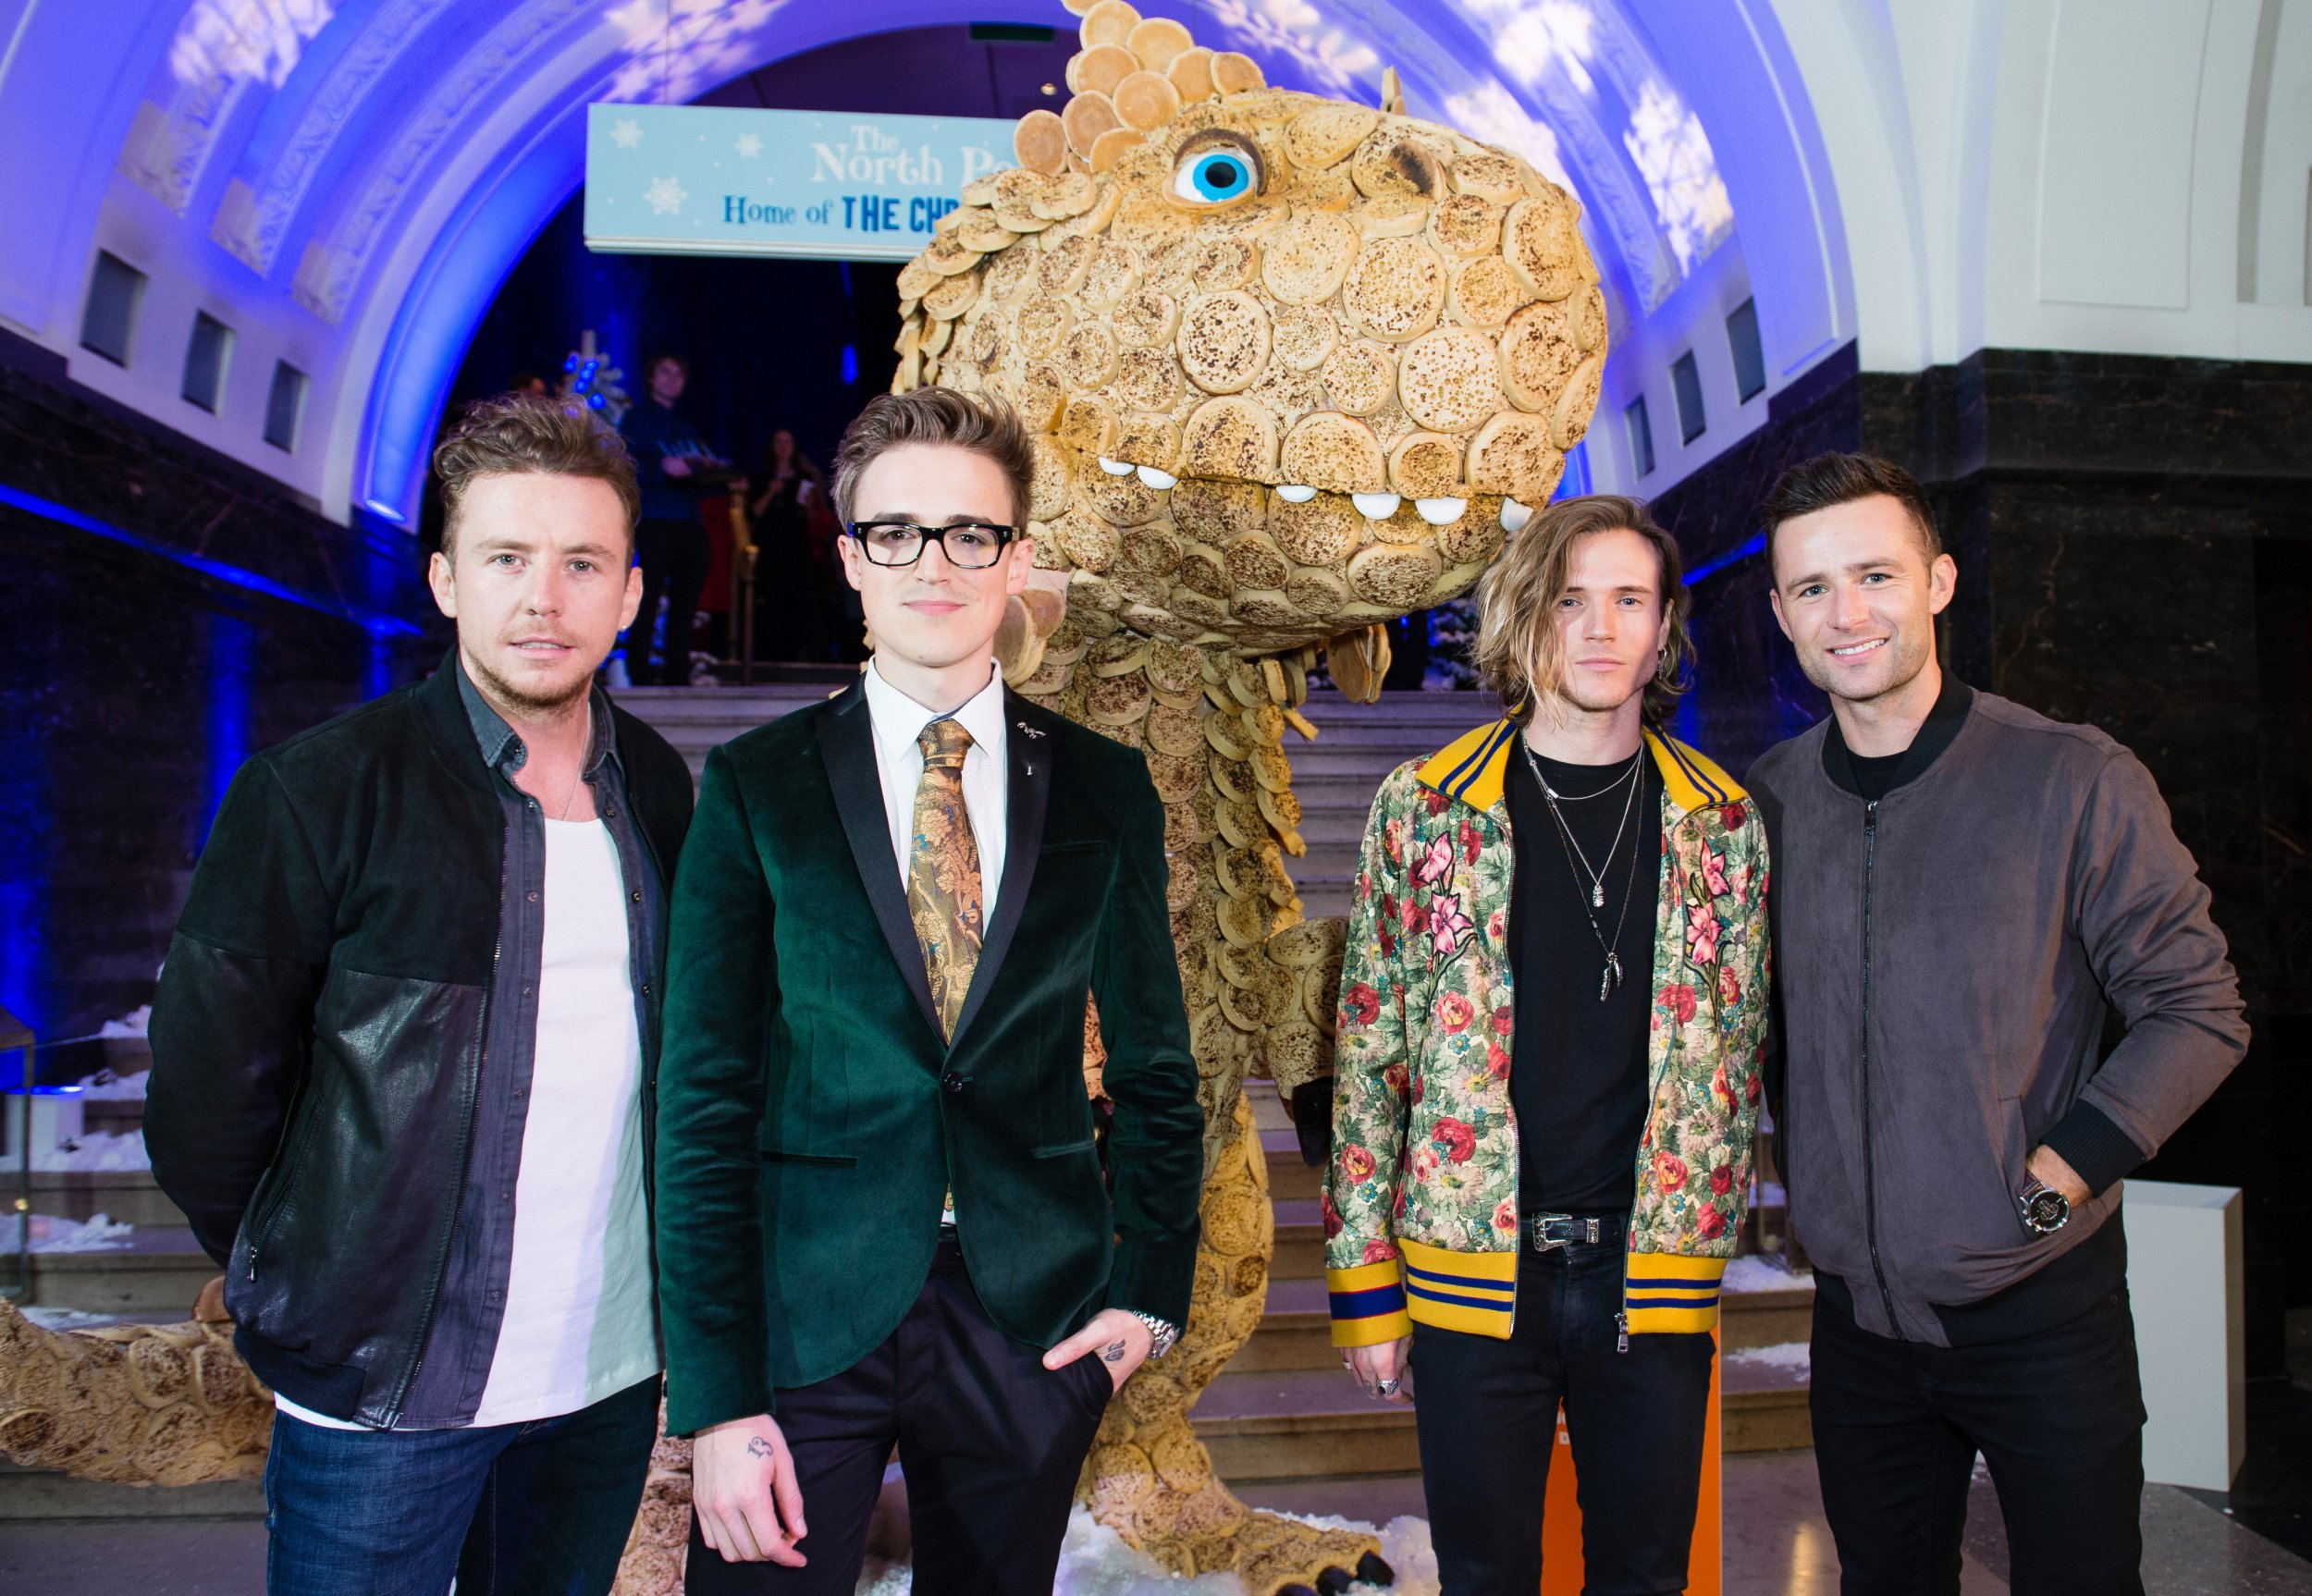 LONDON, ENGLAND - OCTOBER 05: (L-R) Danny Jones, Tom Fletcher, Dougie Poynter and Harry Judd from McFly meet the 'Giant Crumpet Christmasaurus'. Warburtons created a 'Giant Crumpet Christmasaurus' crafted from Warburtons Giant Crumpets, marking the launch of Tom FletcherÕs new book, The Christmasaurus at Natural History Museum on October 5, 2016 in London, England. (Photo by Jeff Spicer/Getty Images for Warburtons)